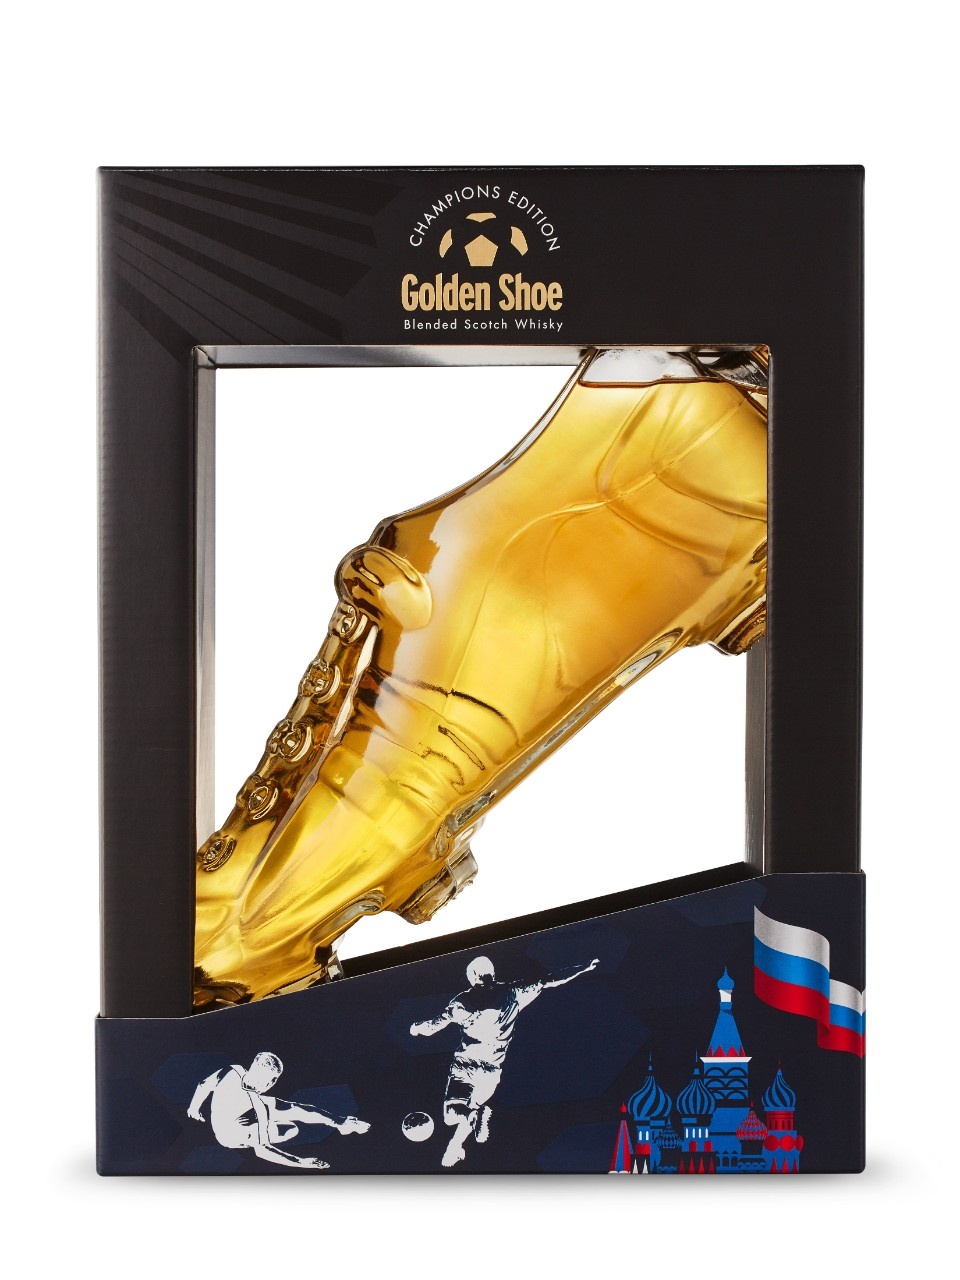 Image for Golden Shoe from LCBO